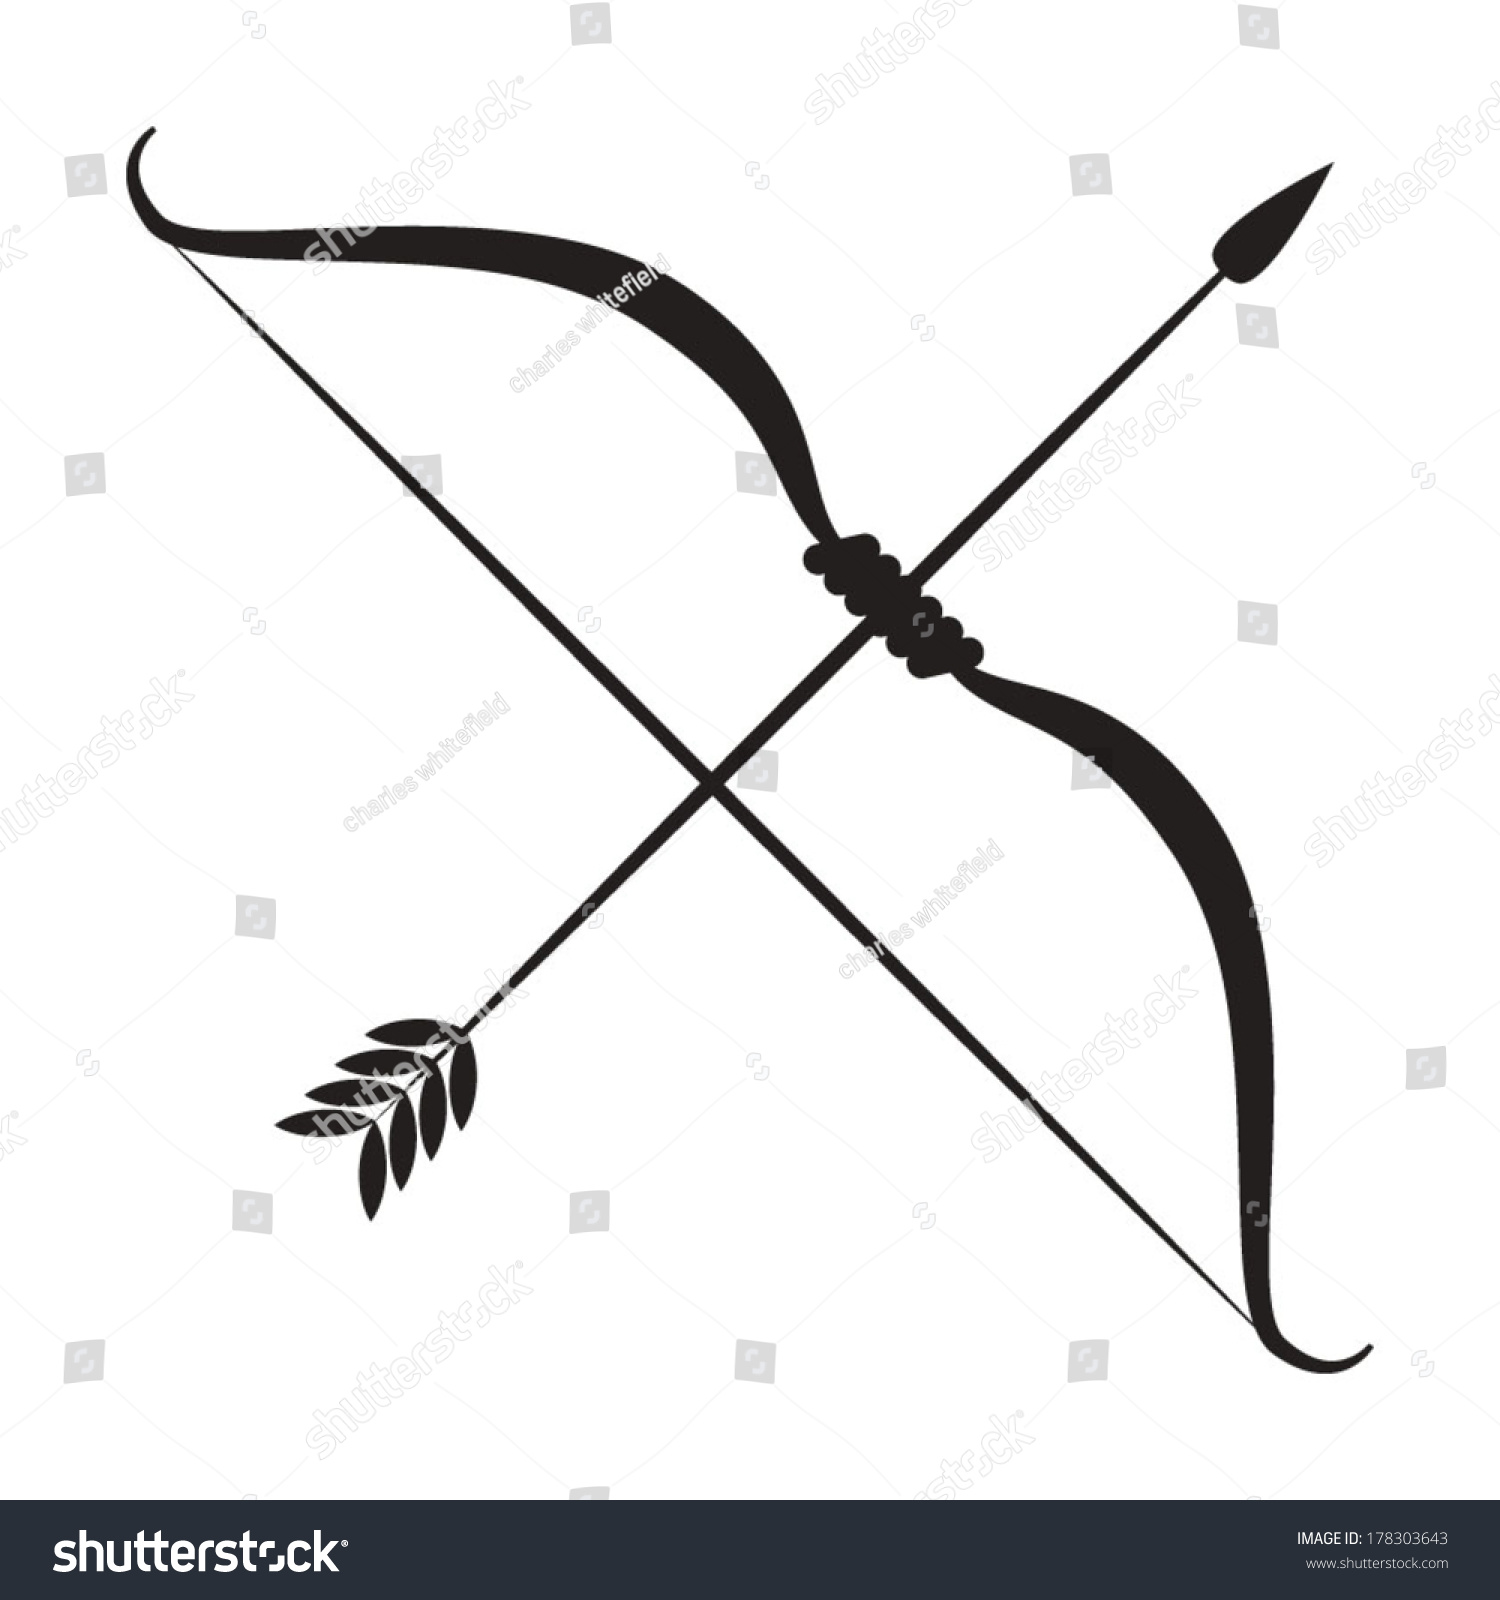 Bow And Arrow Stock Vector 178303643 : Shutterstock